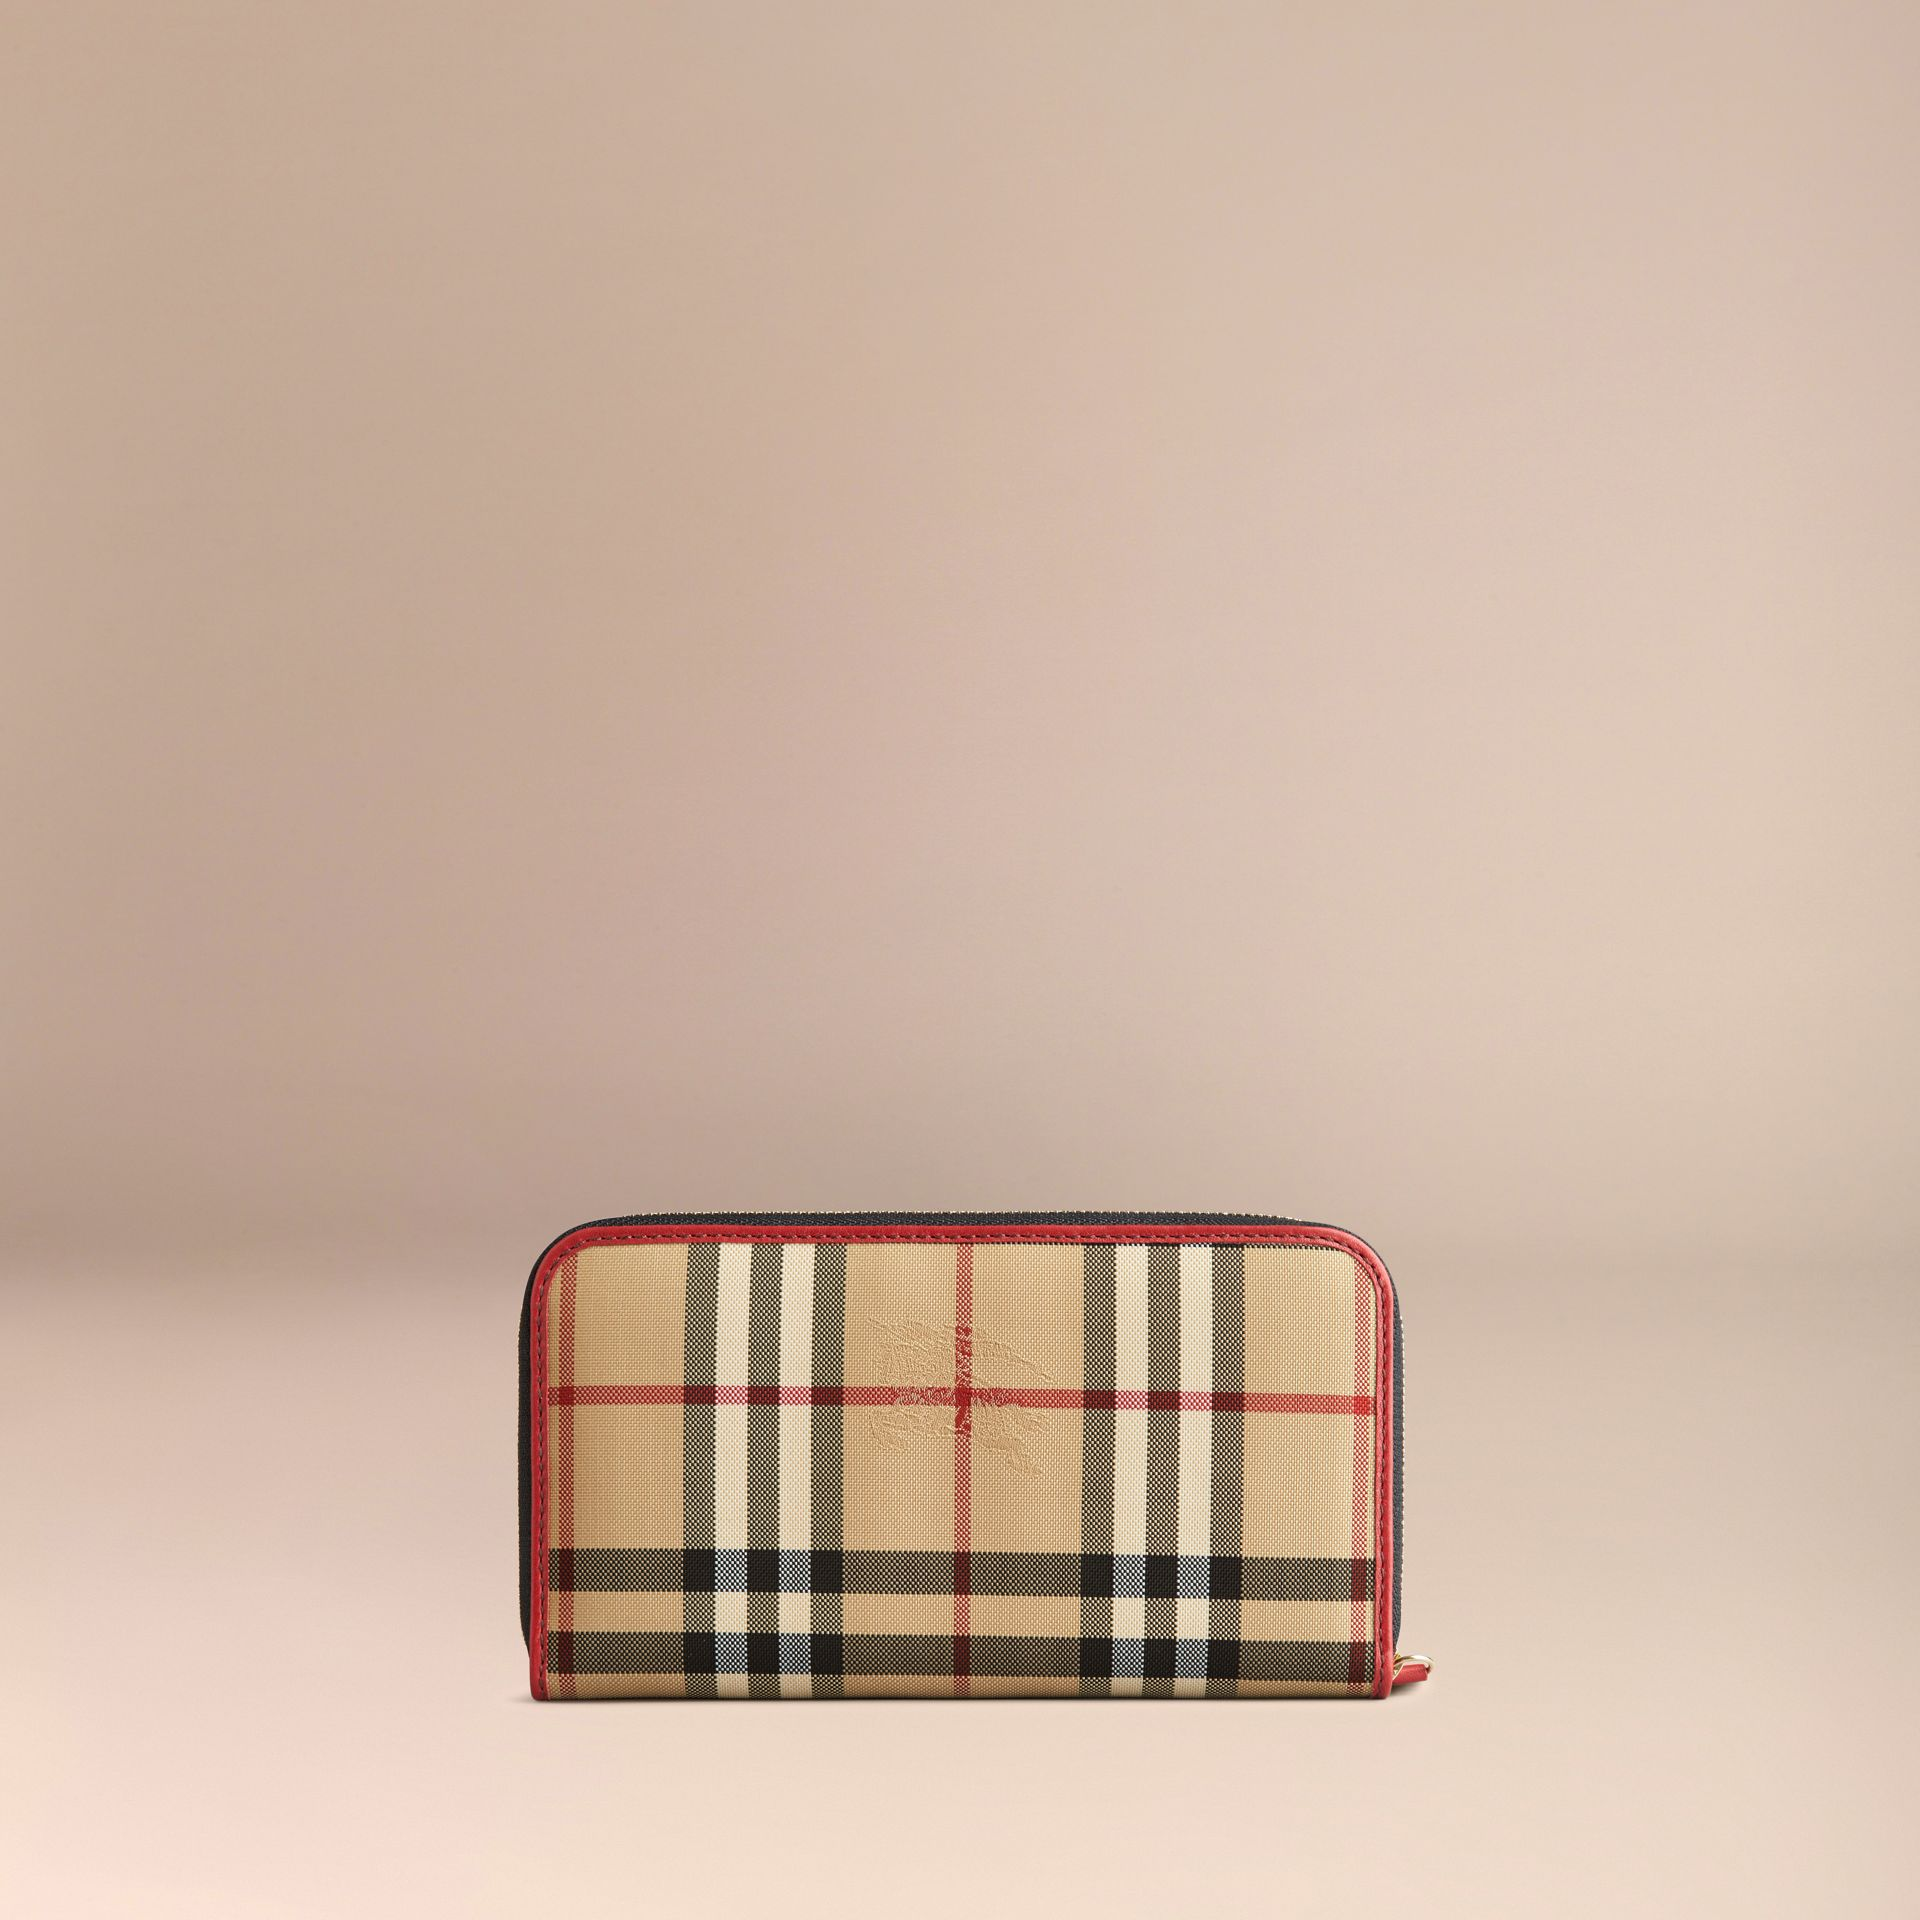 Horseferry Check and Leather Ziparound Wallet in Parade Red - Women | Burberry United Kingdom - gallery image 3